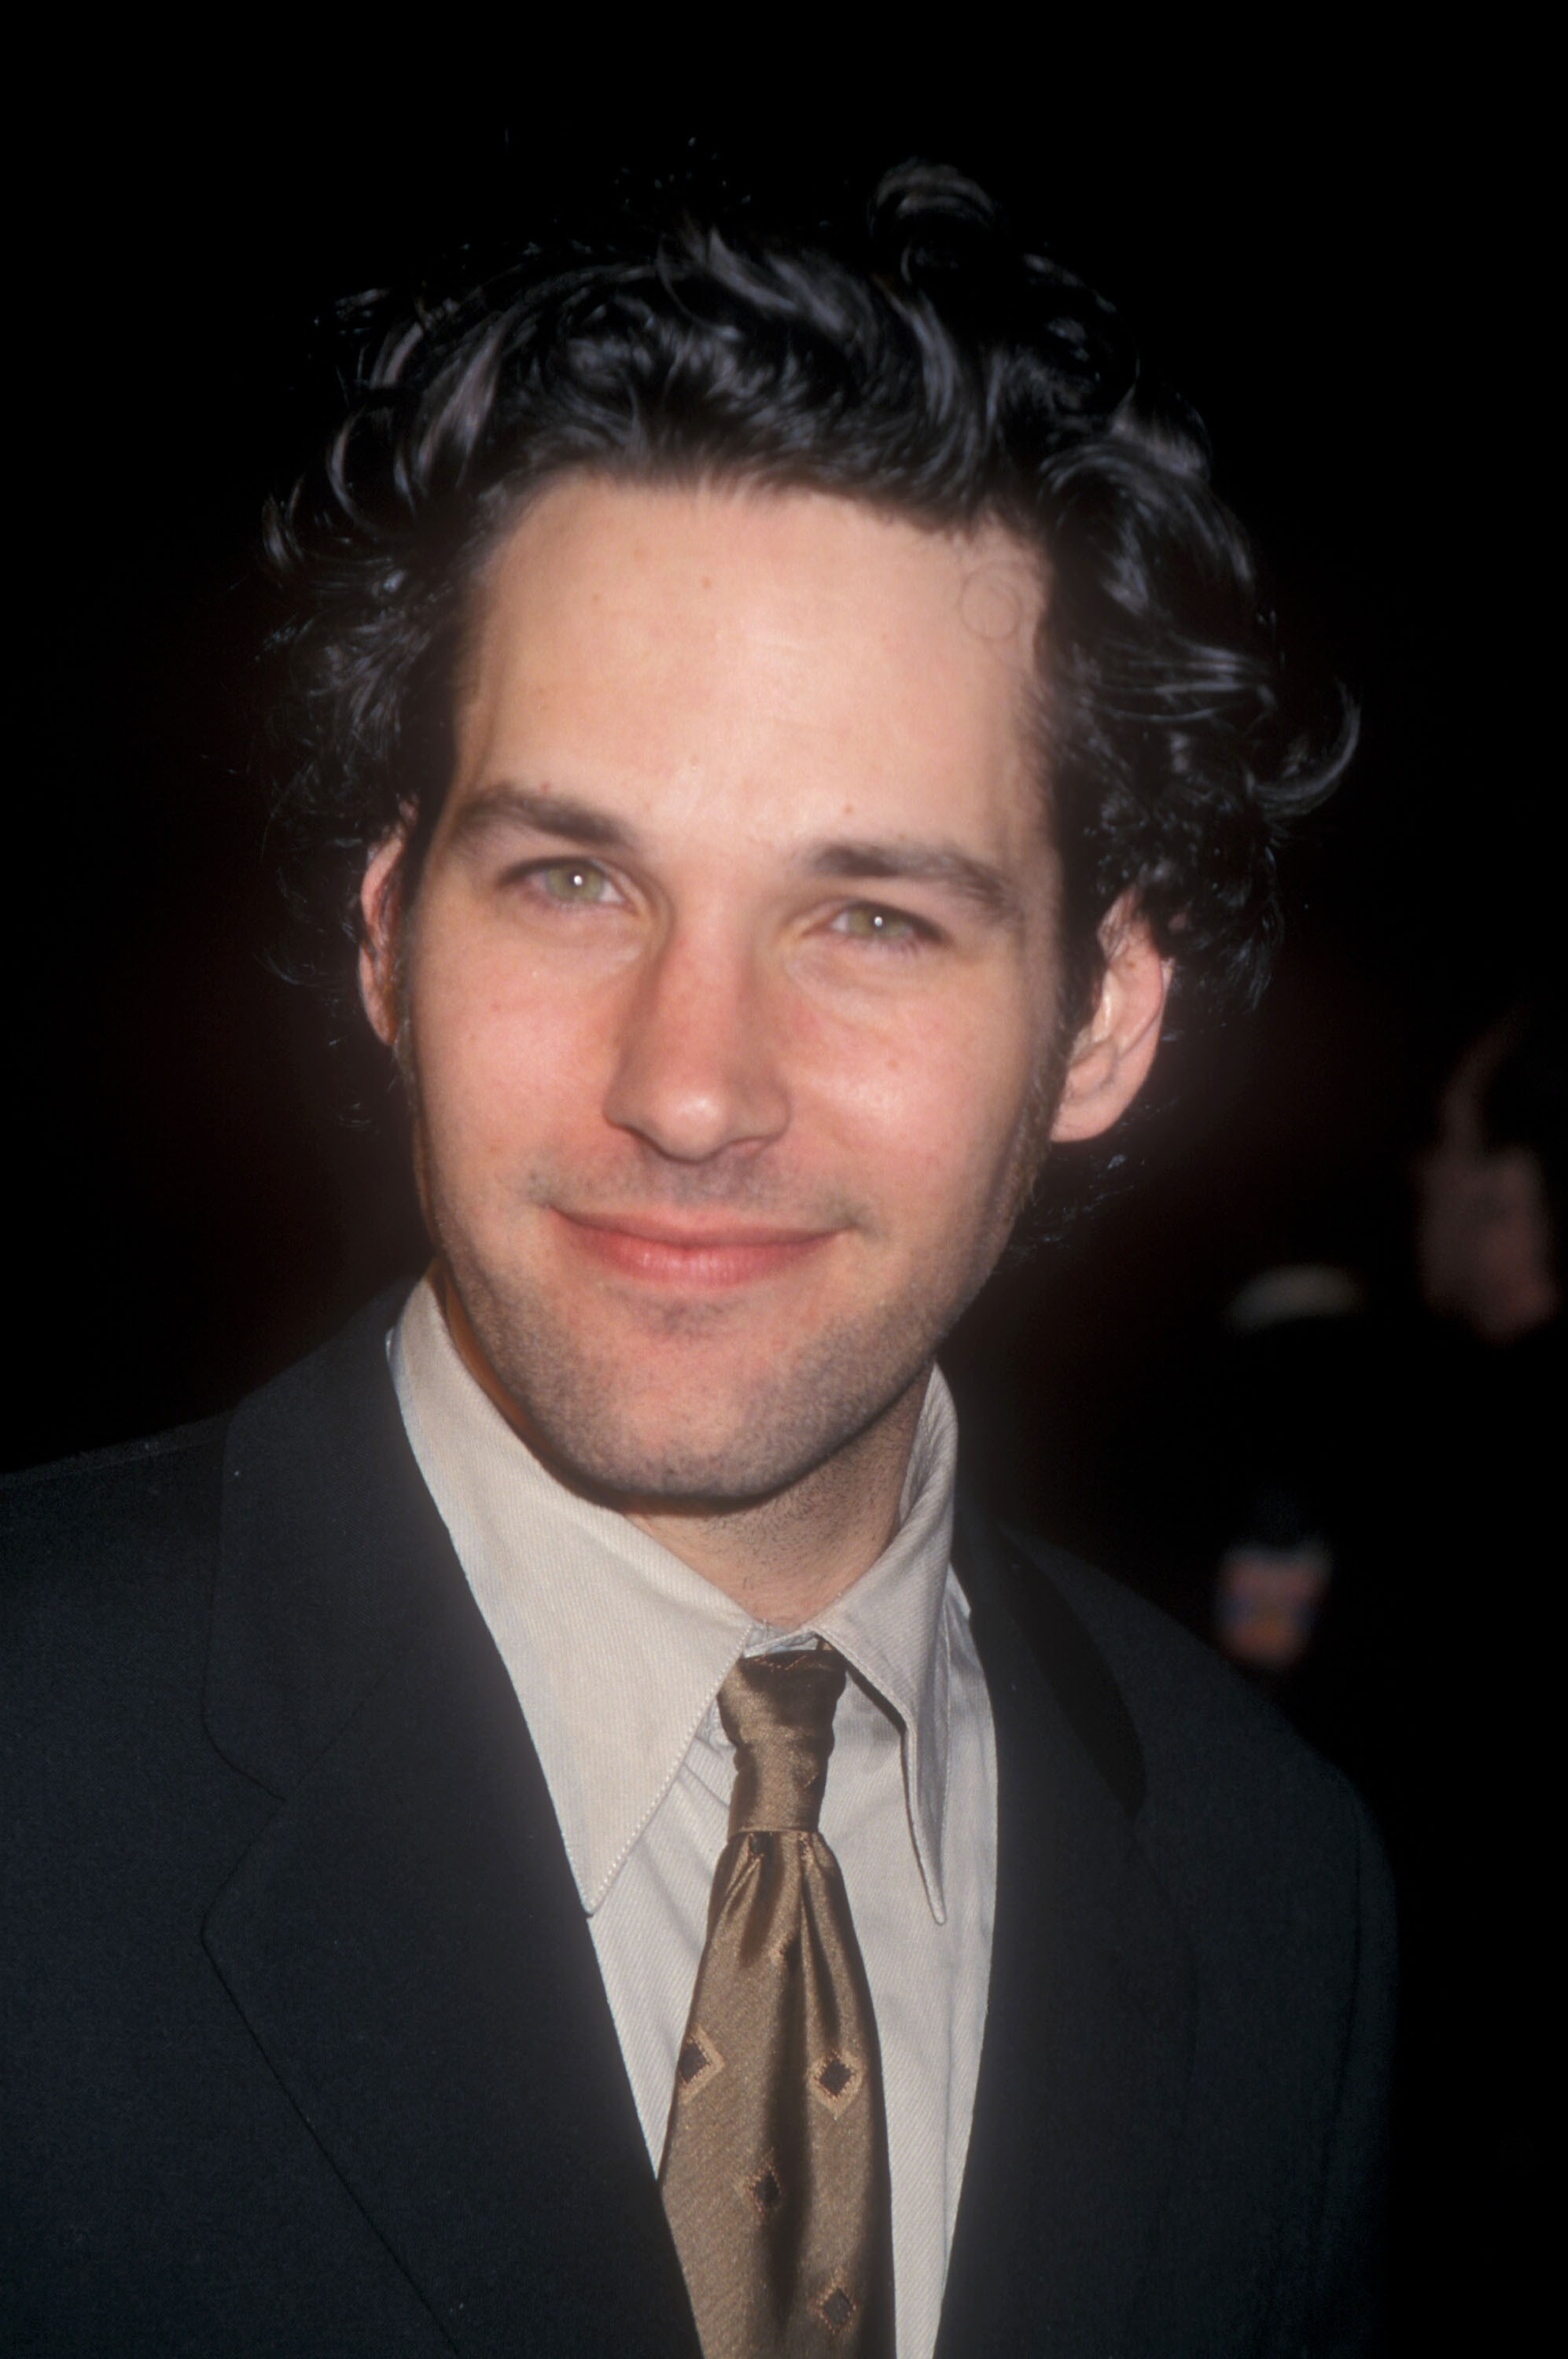 celebrities-who-look-so-young-they-must-be-vampires-paul-rudd-1999-1555765836611865203160.jpg